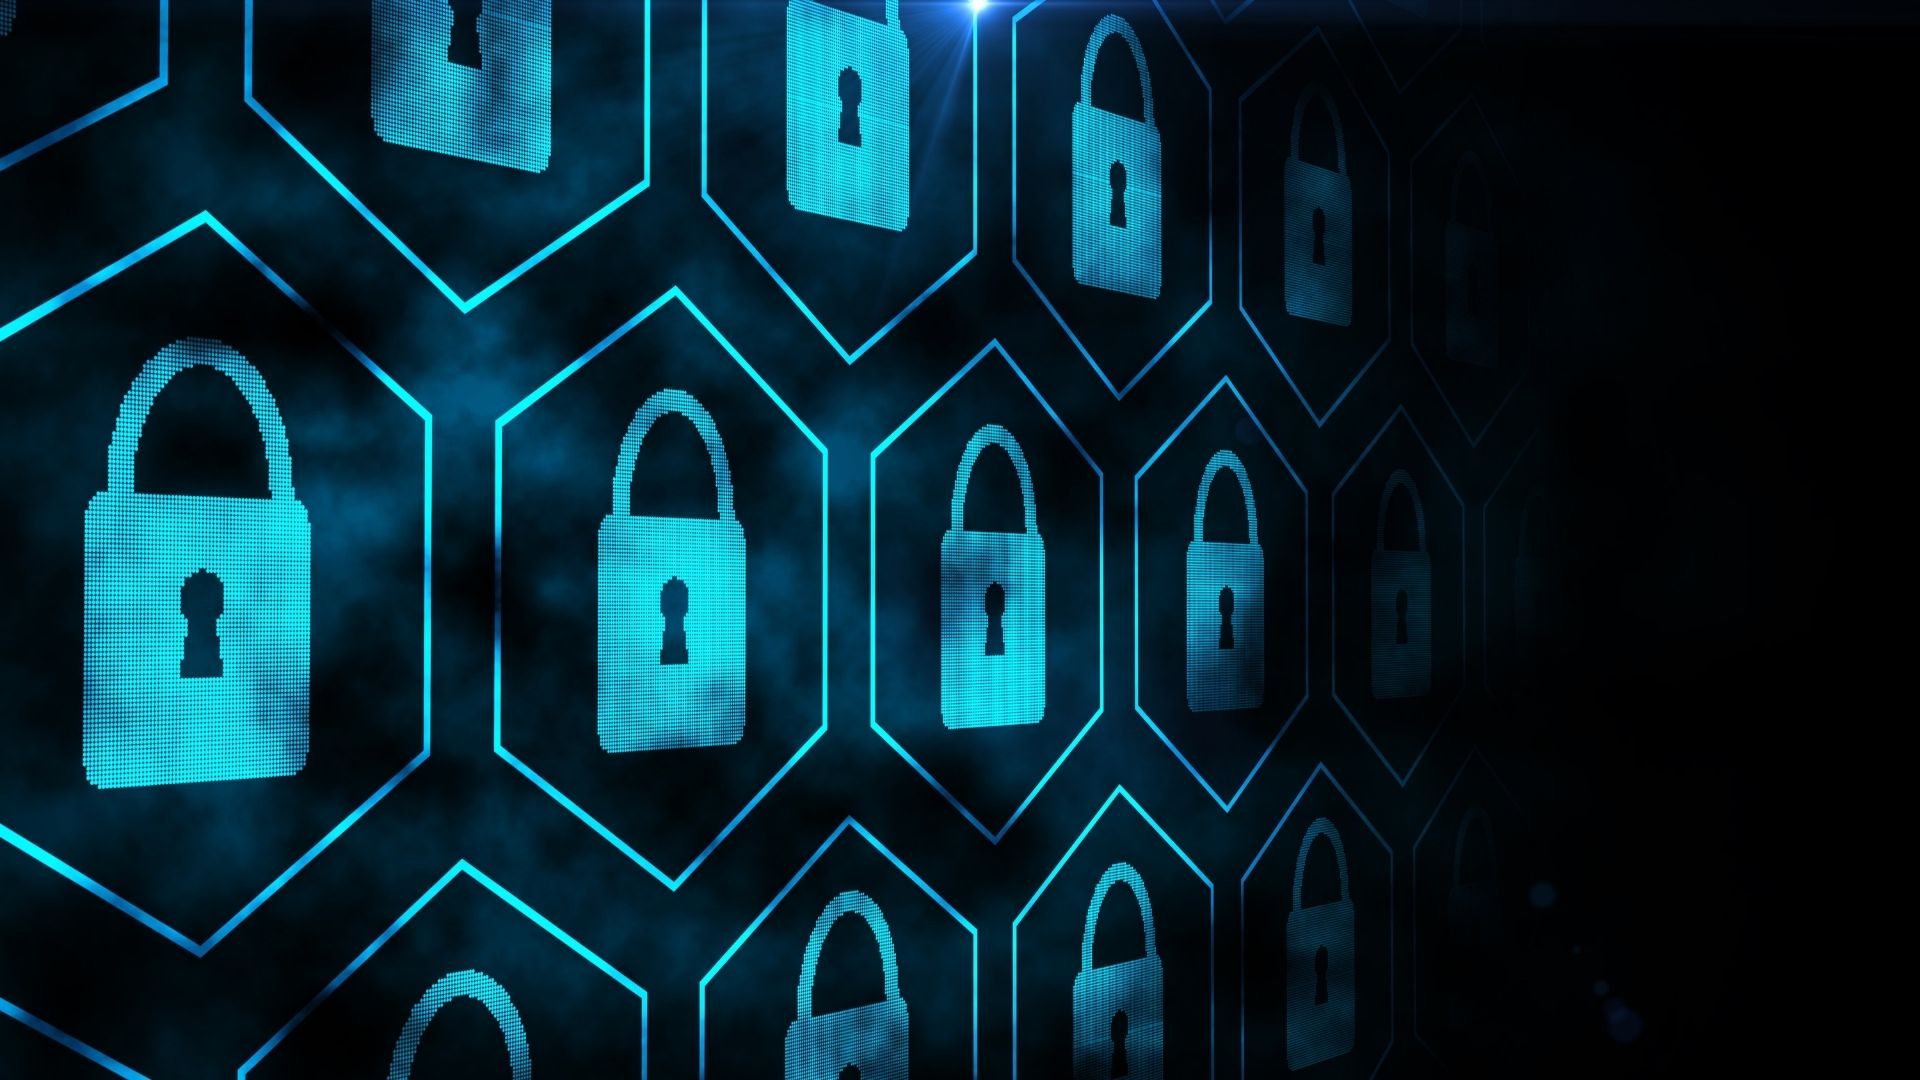 Multidimensional technology and the associated threats to security